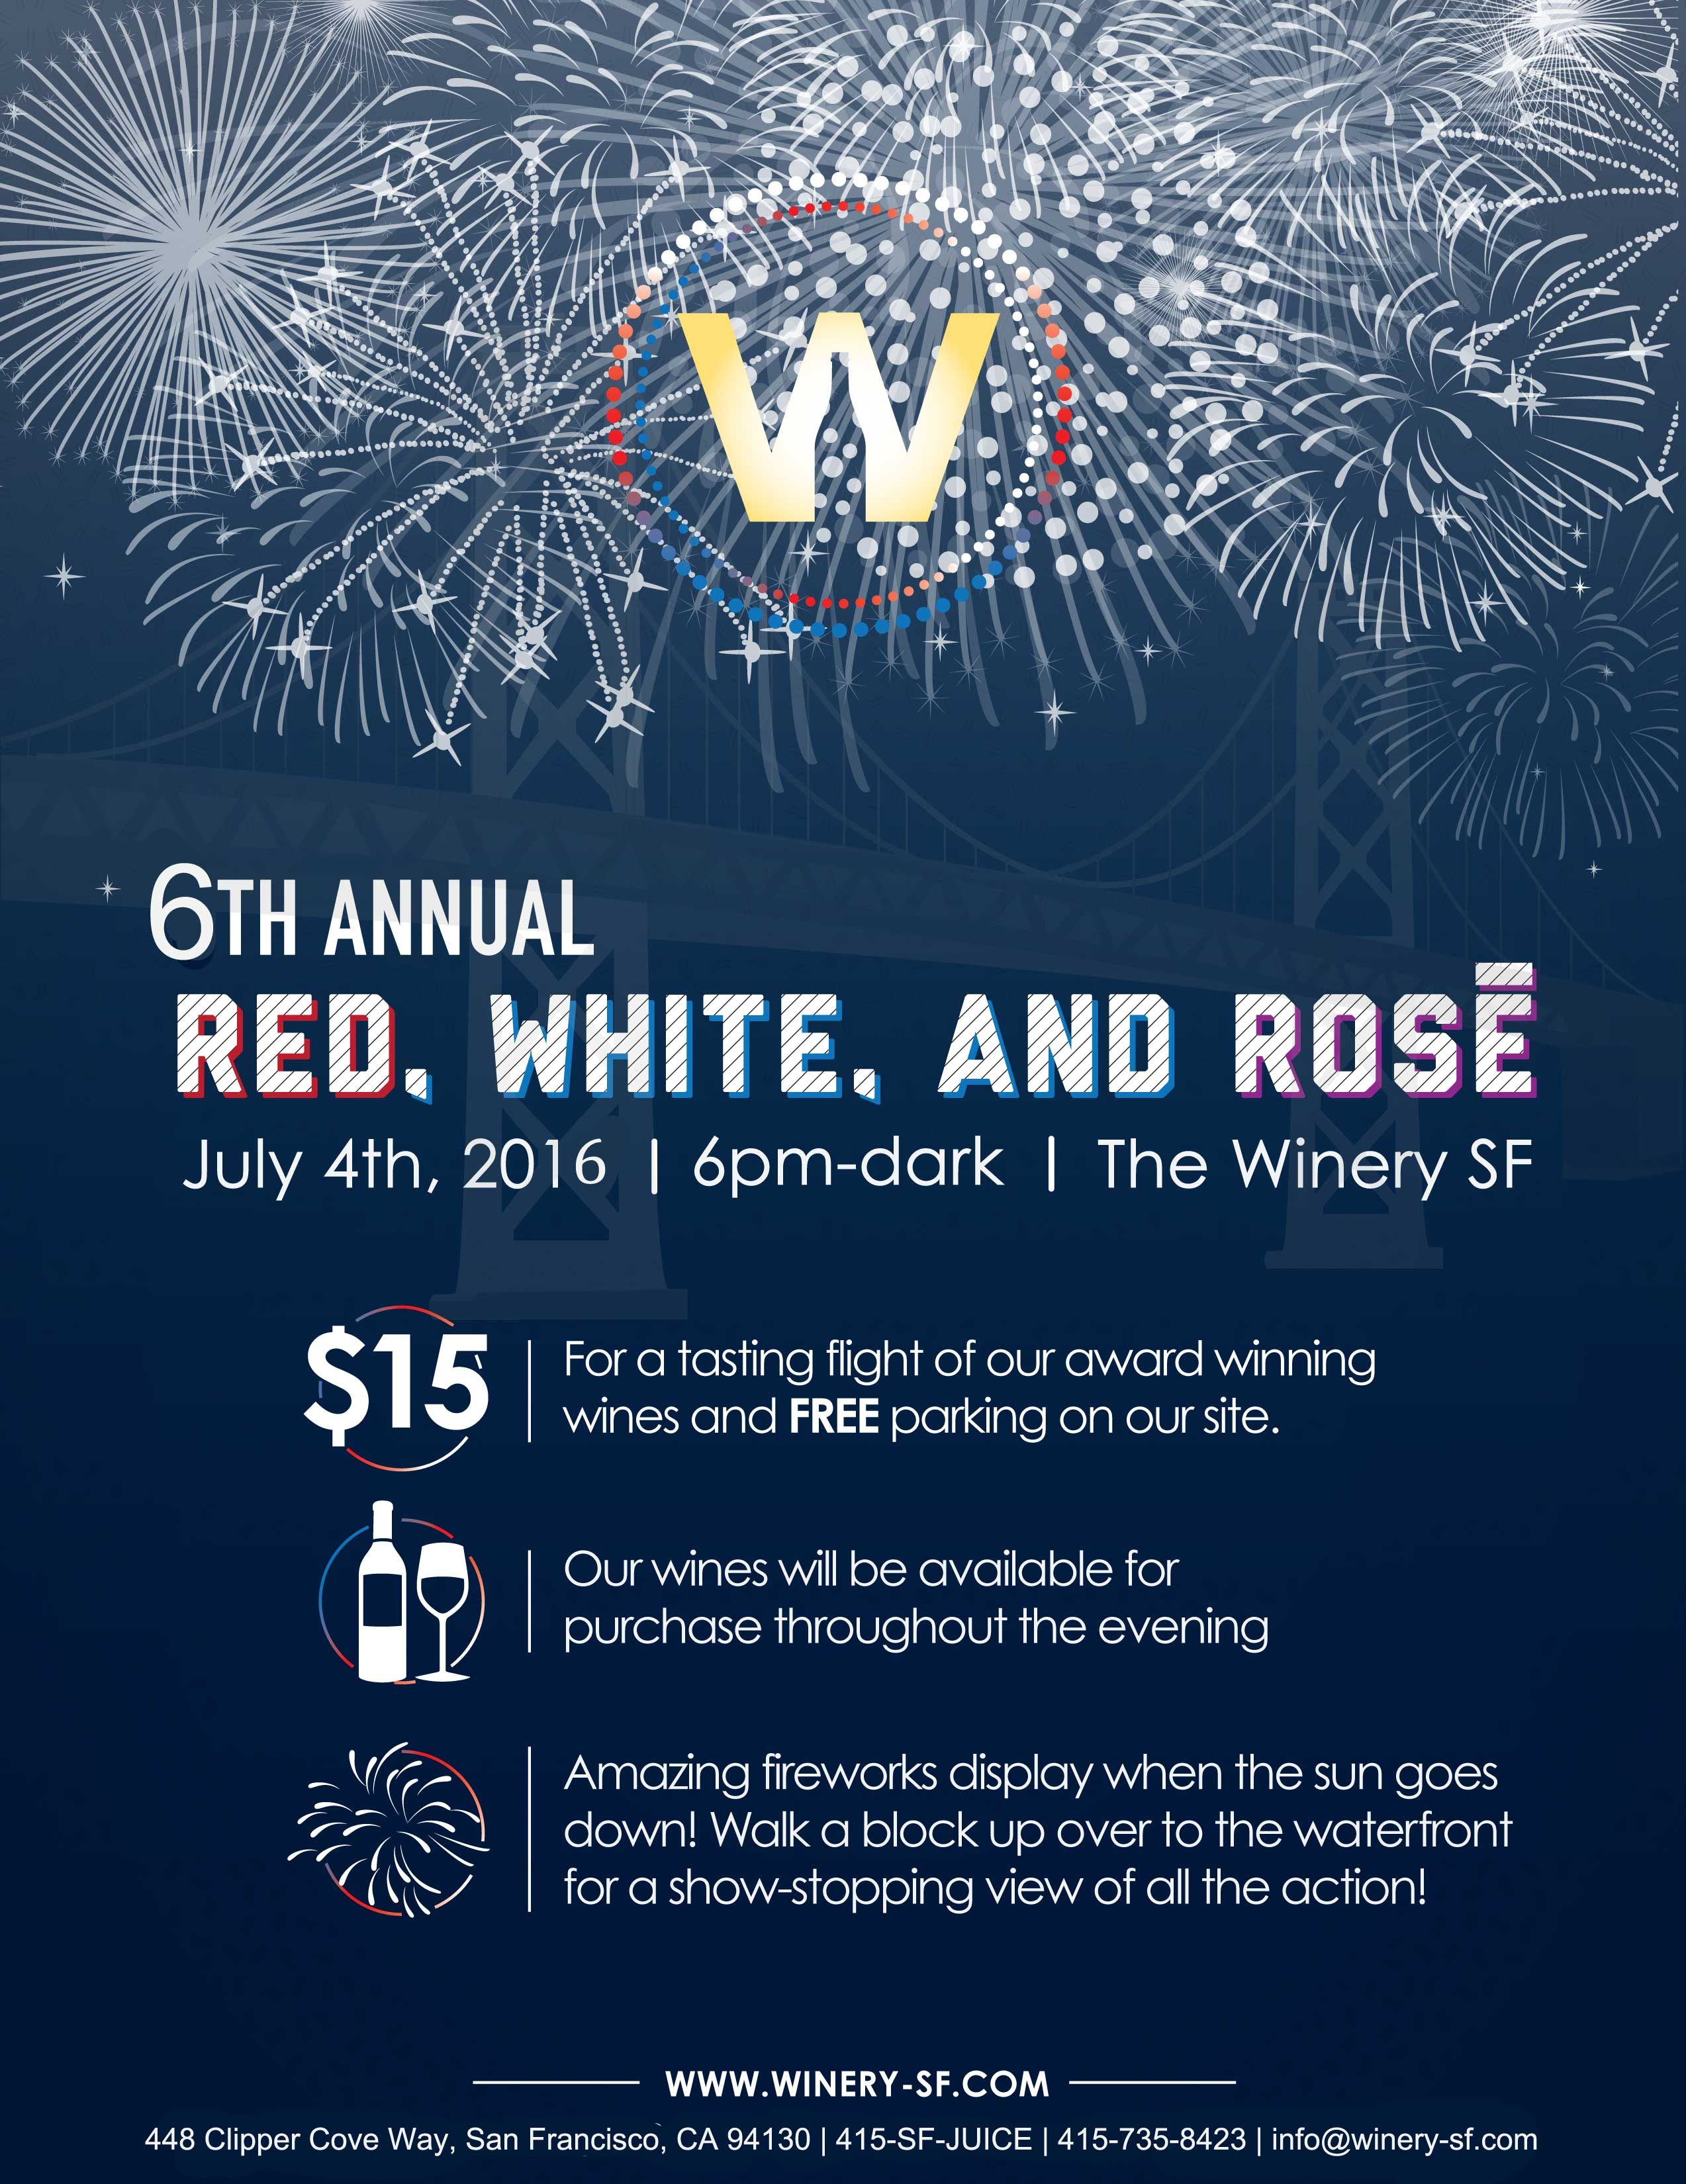 SAVE THIS EVENT 4th of July Celebration: Red, White and Rosé at The Winery SF & Winemaker Studios